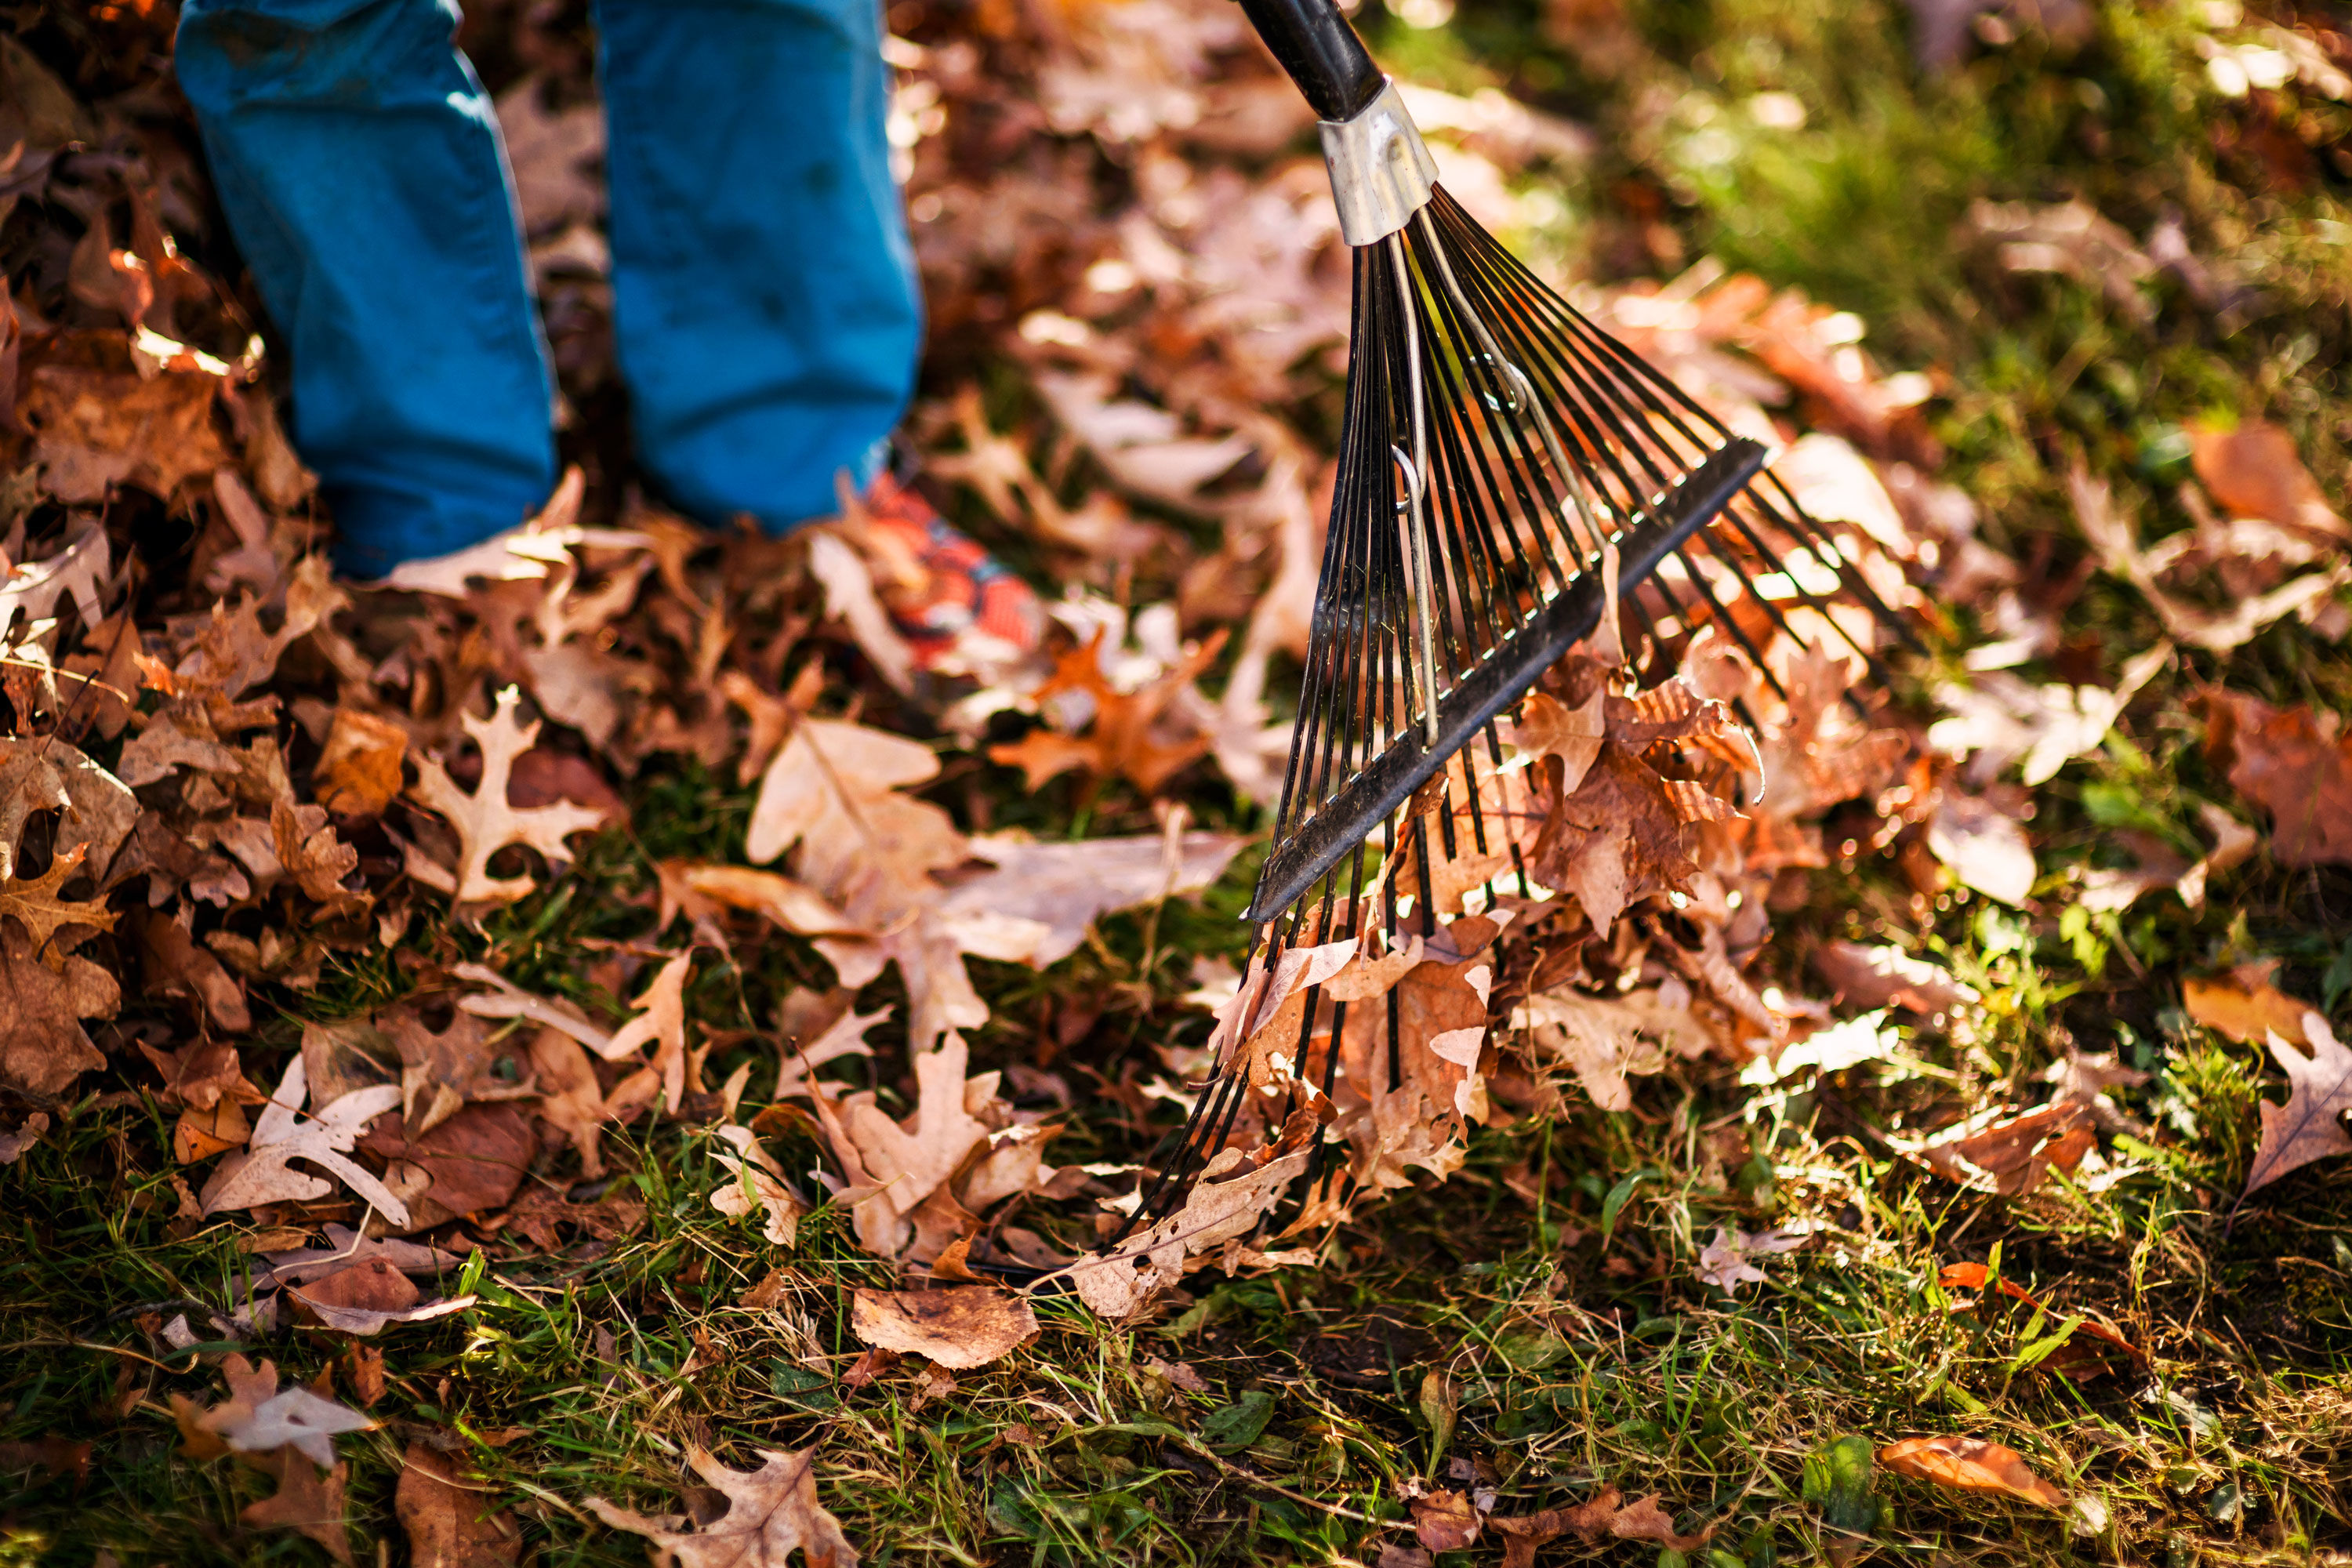 Does Raking Leaves Make You A Bad Person?